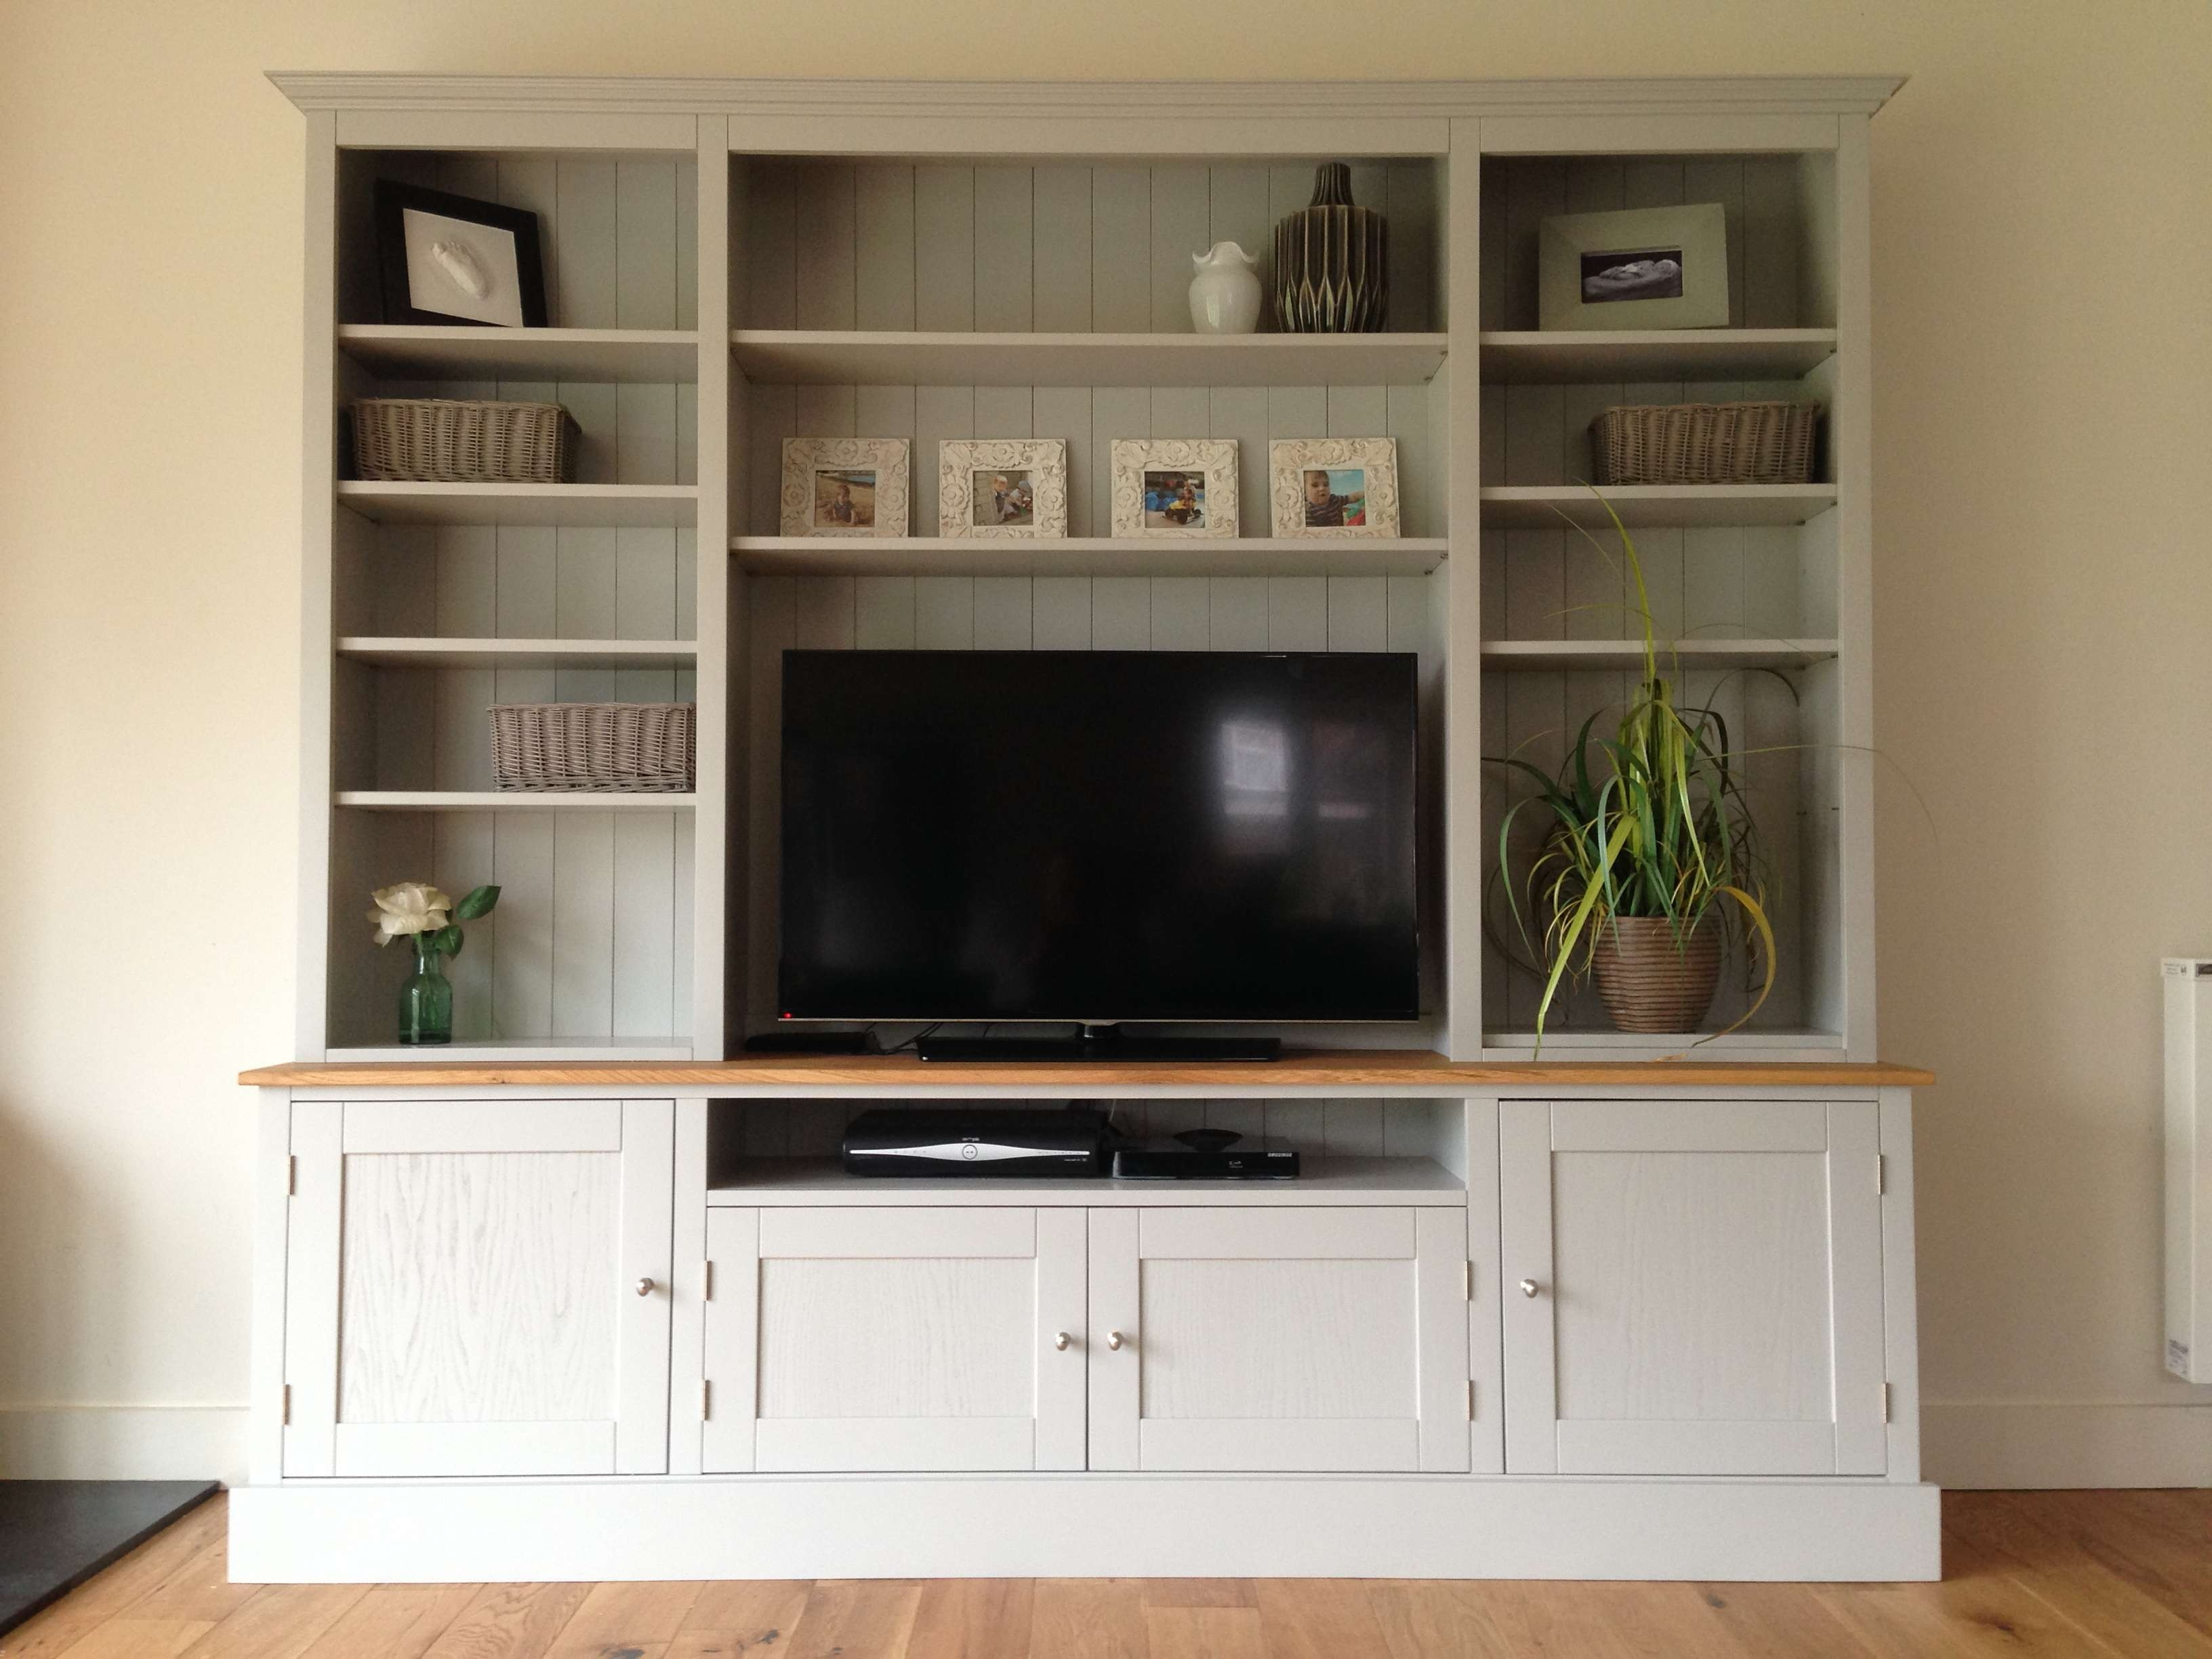 Georgeous 7ft Painted Tv Unit / Dresser – Nest At Number 20 Throughout White Painted Tv Cabinets (View 19 of 20)